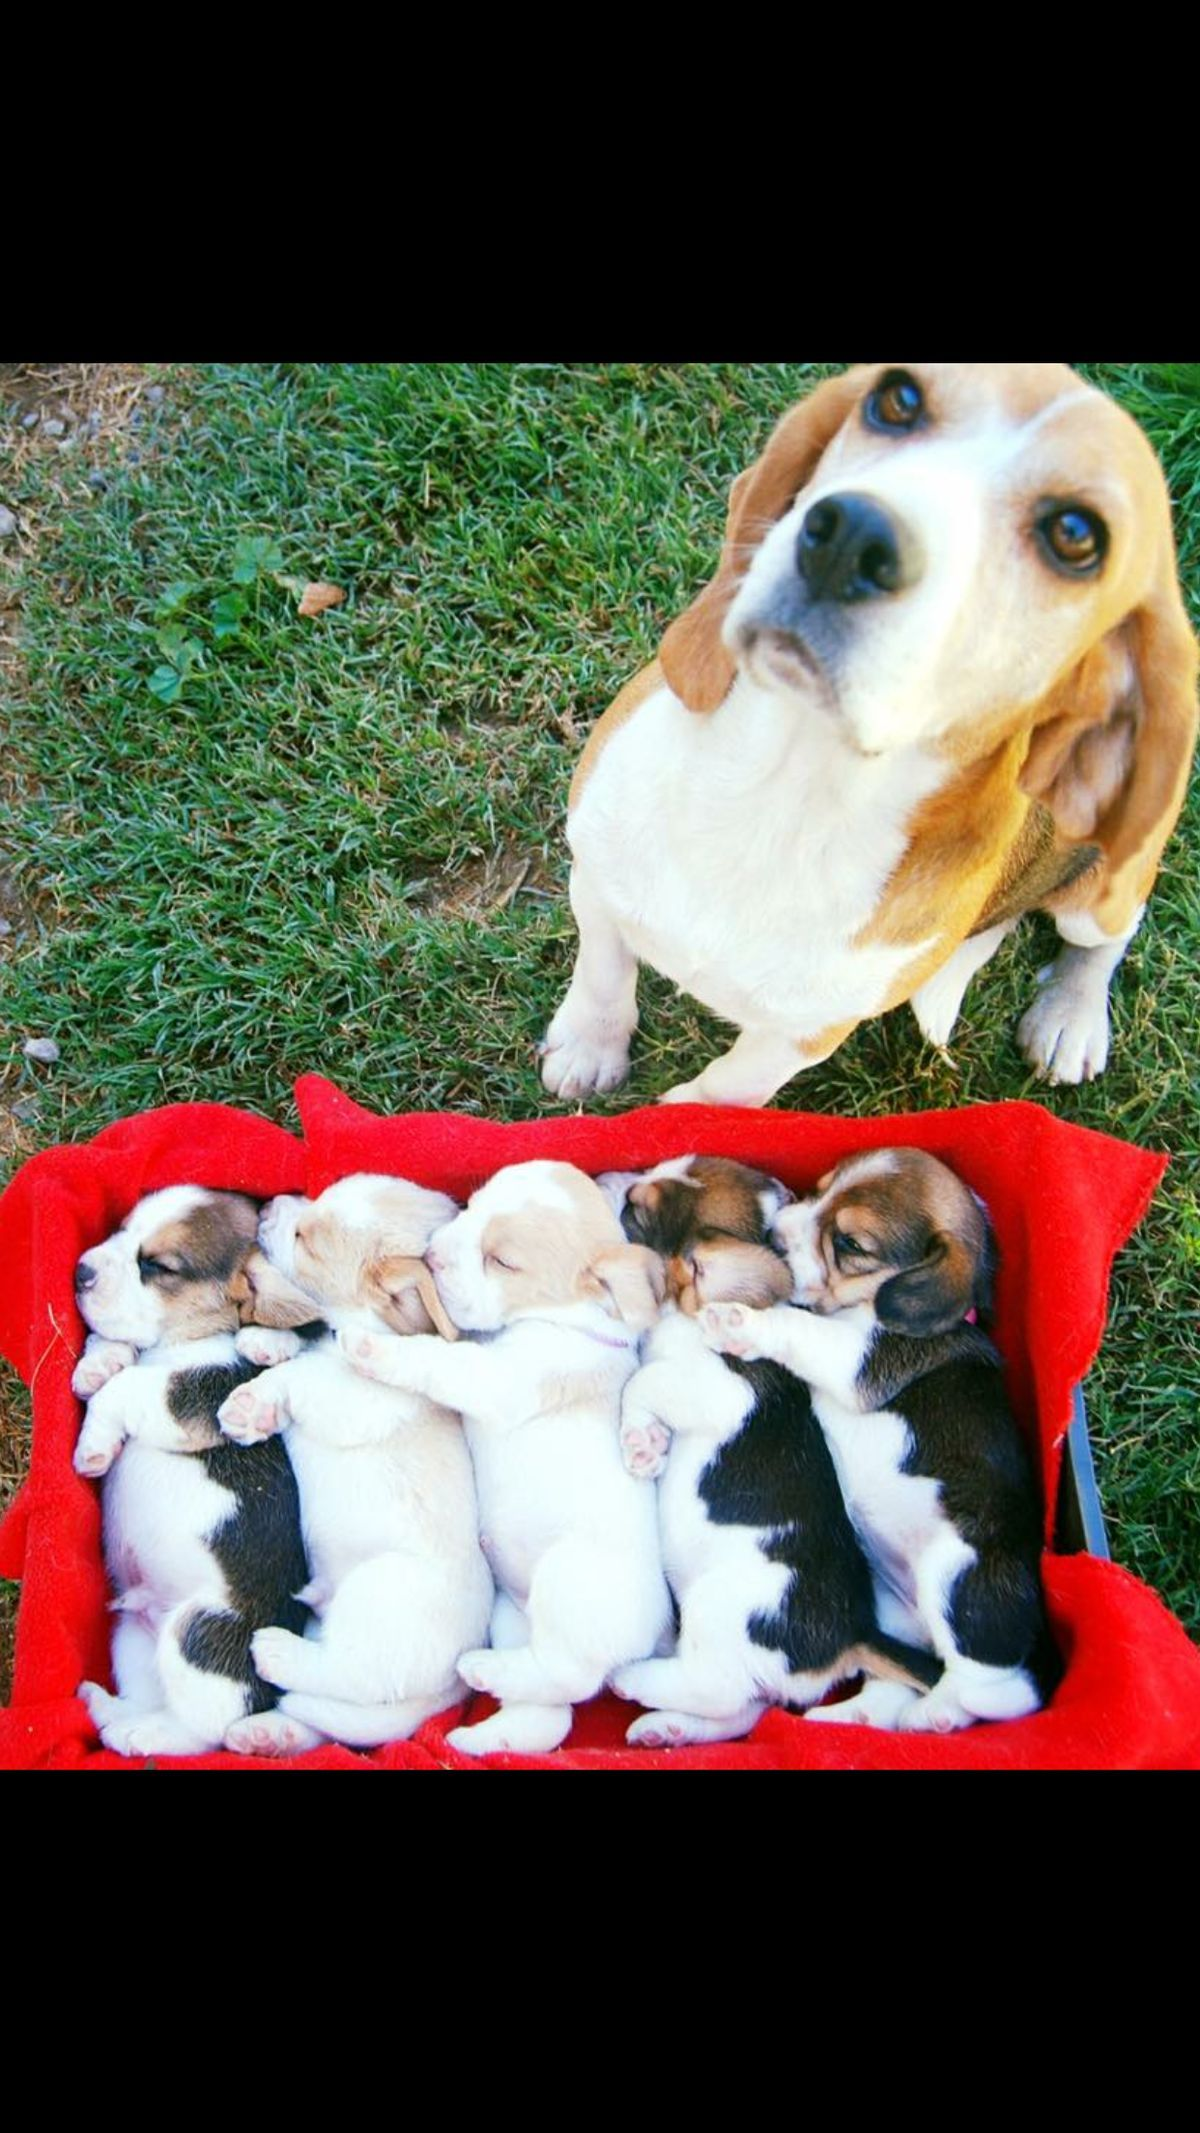 Cute 8 Weeks Old Baby Beagle Plays With Older Beagles For The